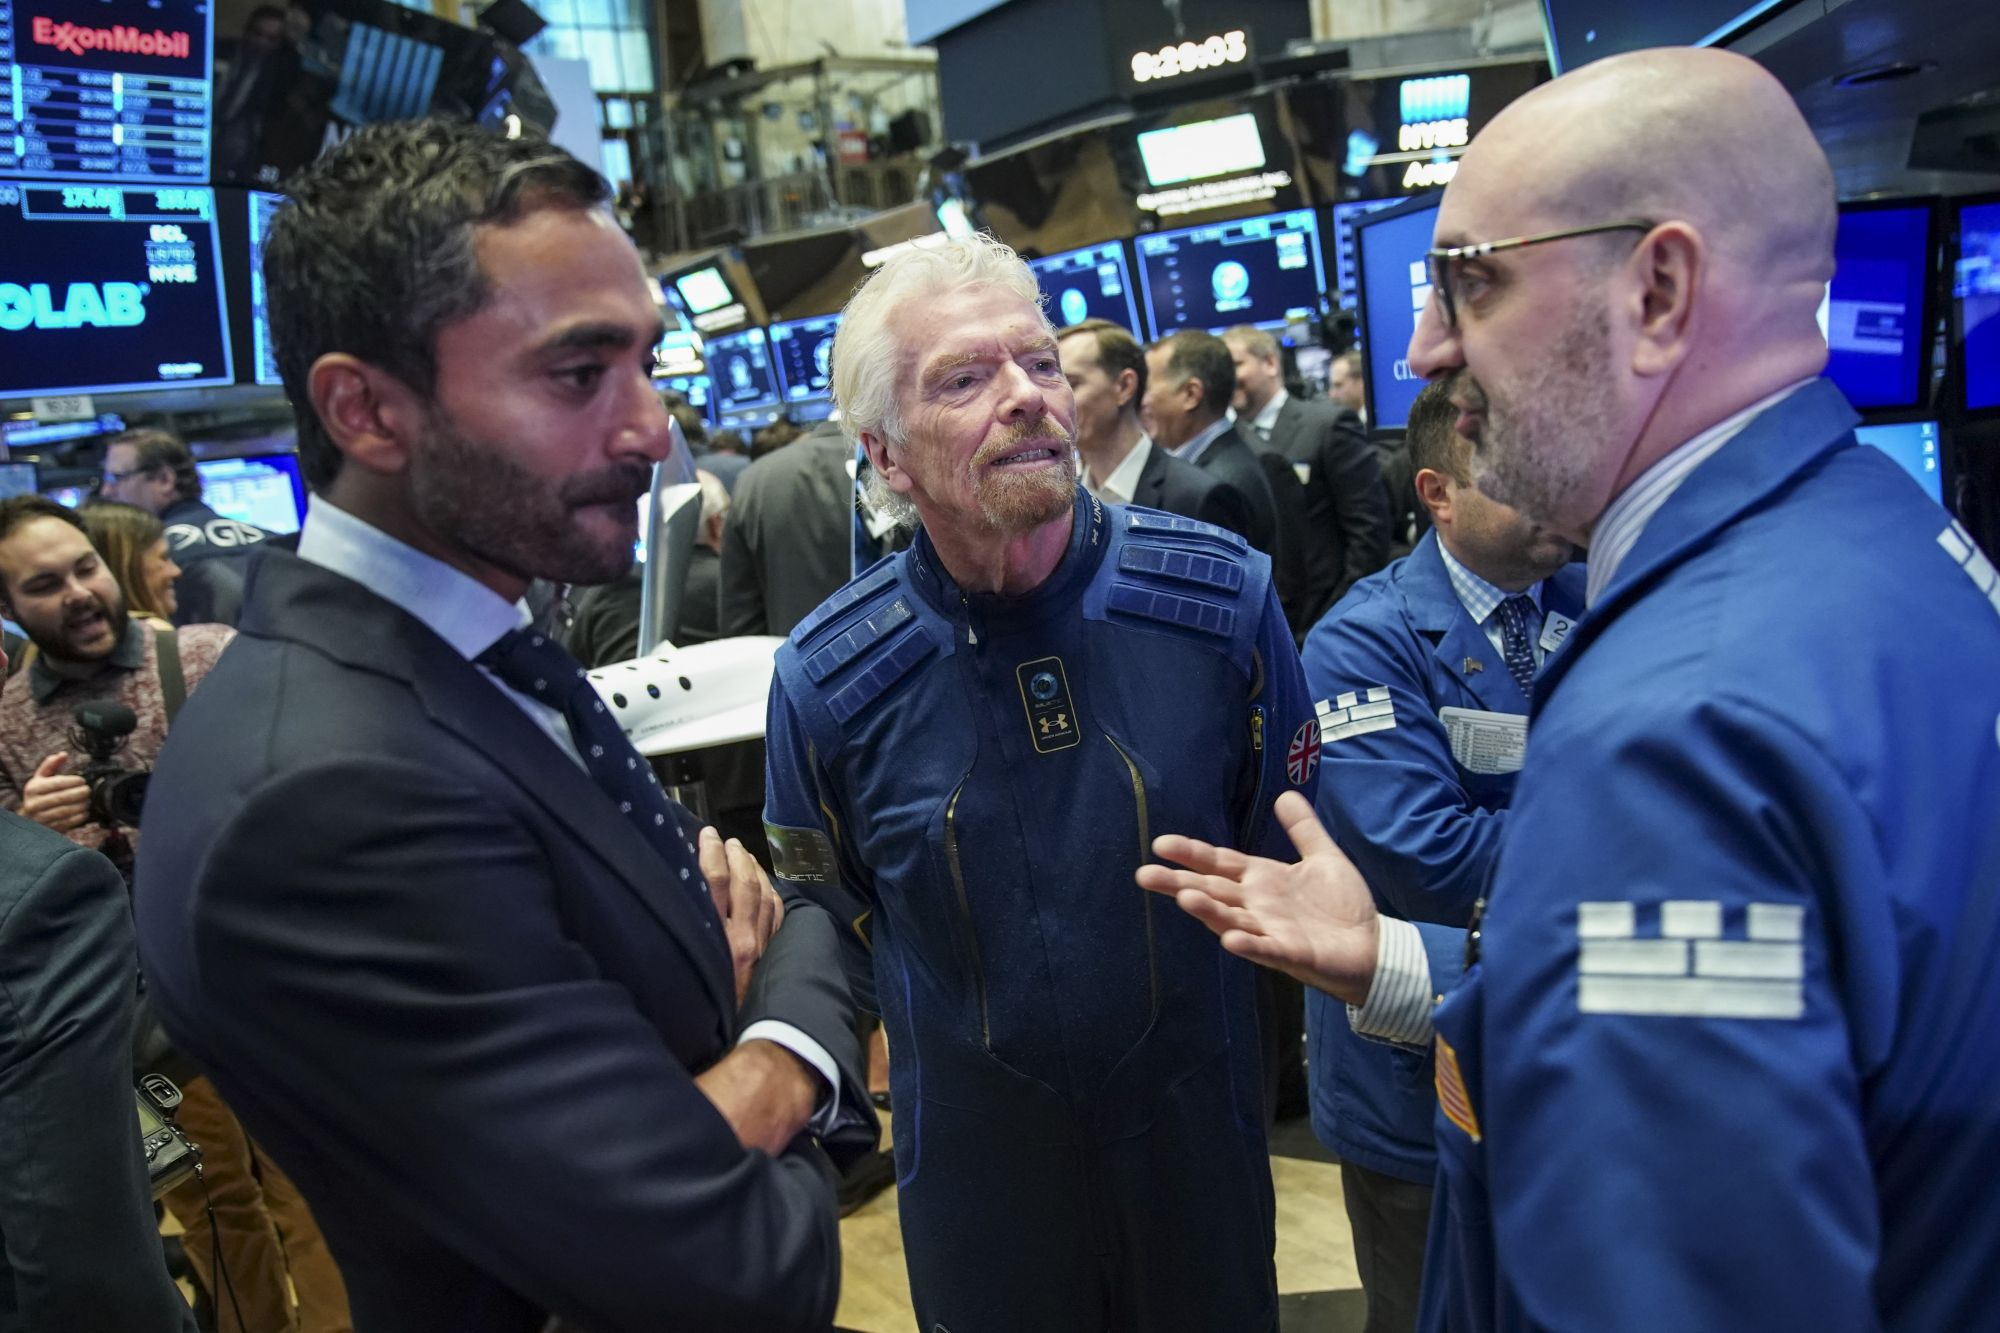 NEW YORK, NY - OCTOBER 28: Sir Richard Branson, Founder of Virgin Galactic, talks with a trader before ringing a ceremonial bell on the floor of the New York Stock Exchange (NYSE) to promote the first day of trading of Virgin Galactic Holdings shares on October 28, 2019 in New York City. Virgin Galactic Holdings became the first space-tourism company to go public as it began trading on Monday with a market value of about $1 billion. (Photo by Drew Angerer/Getty Images)